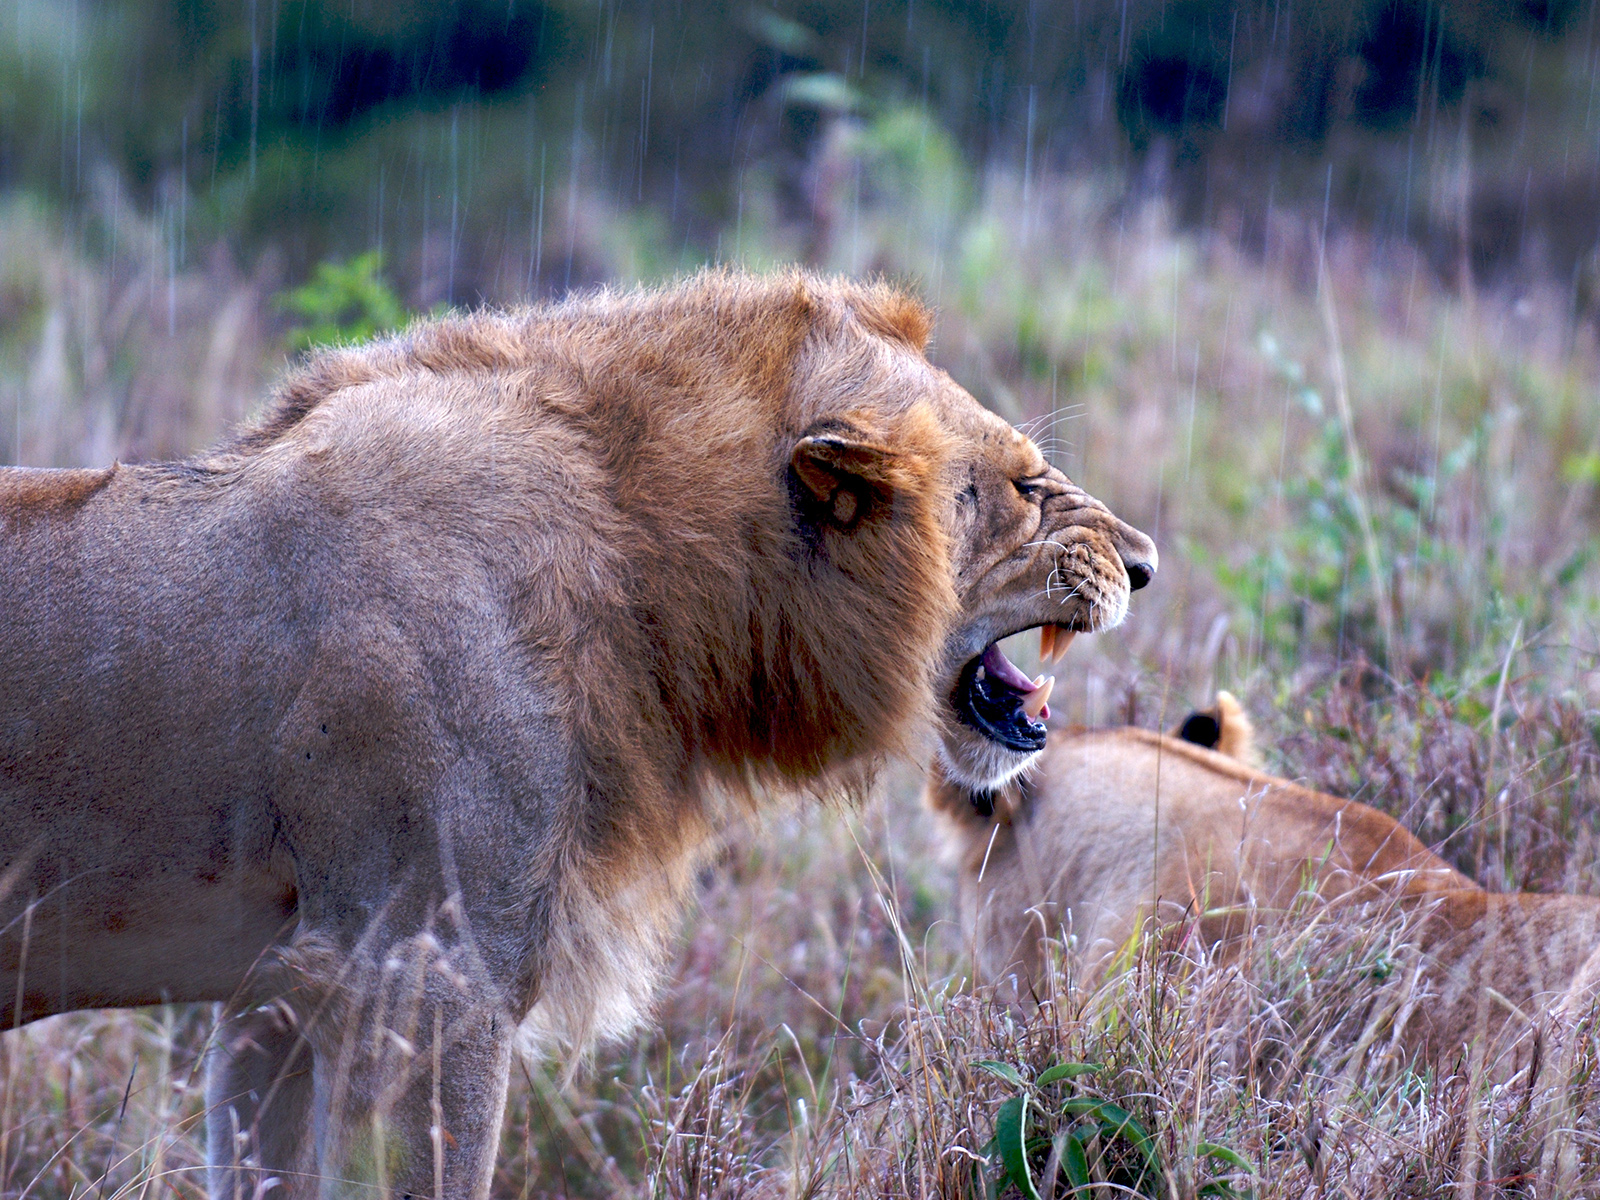 Lion yawning under the rain in the Masai Mara, Kenya